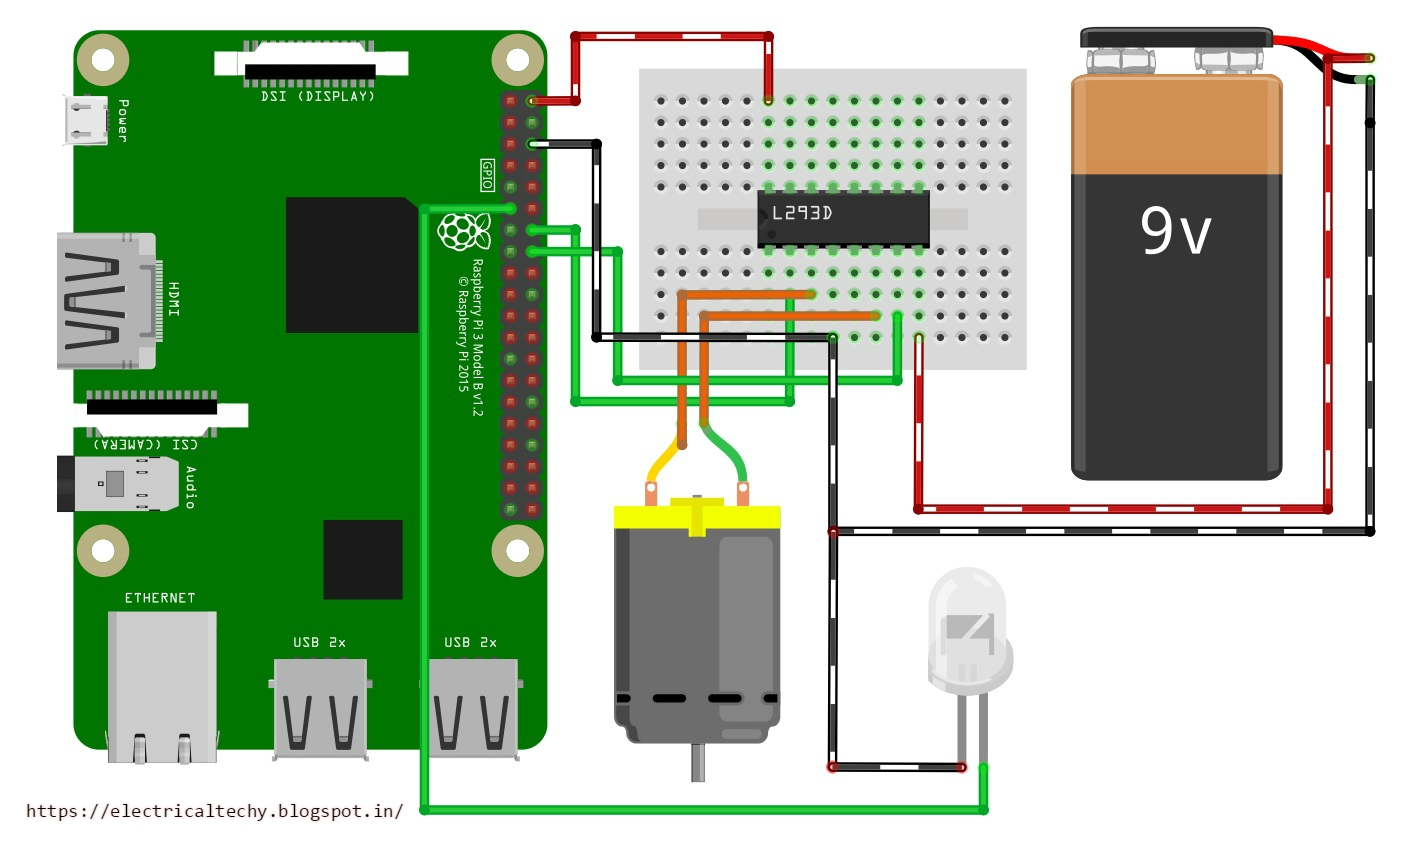 Electronics Electrical Techy Gui Controlled Devices Raspberry Pi B Circuit Diagram Schematic